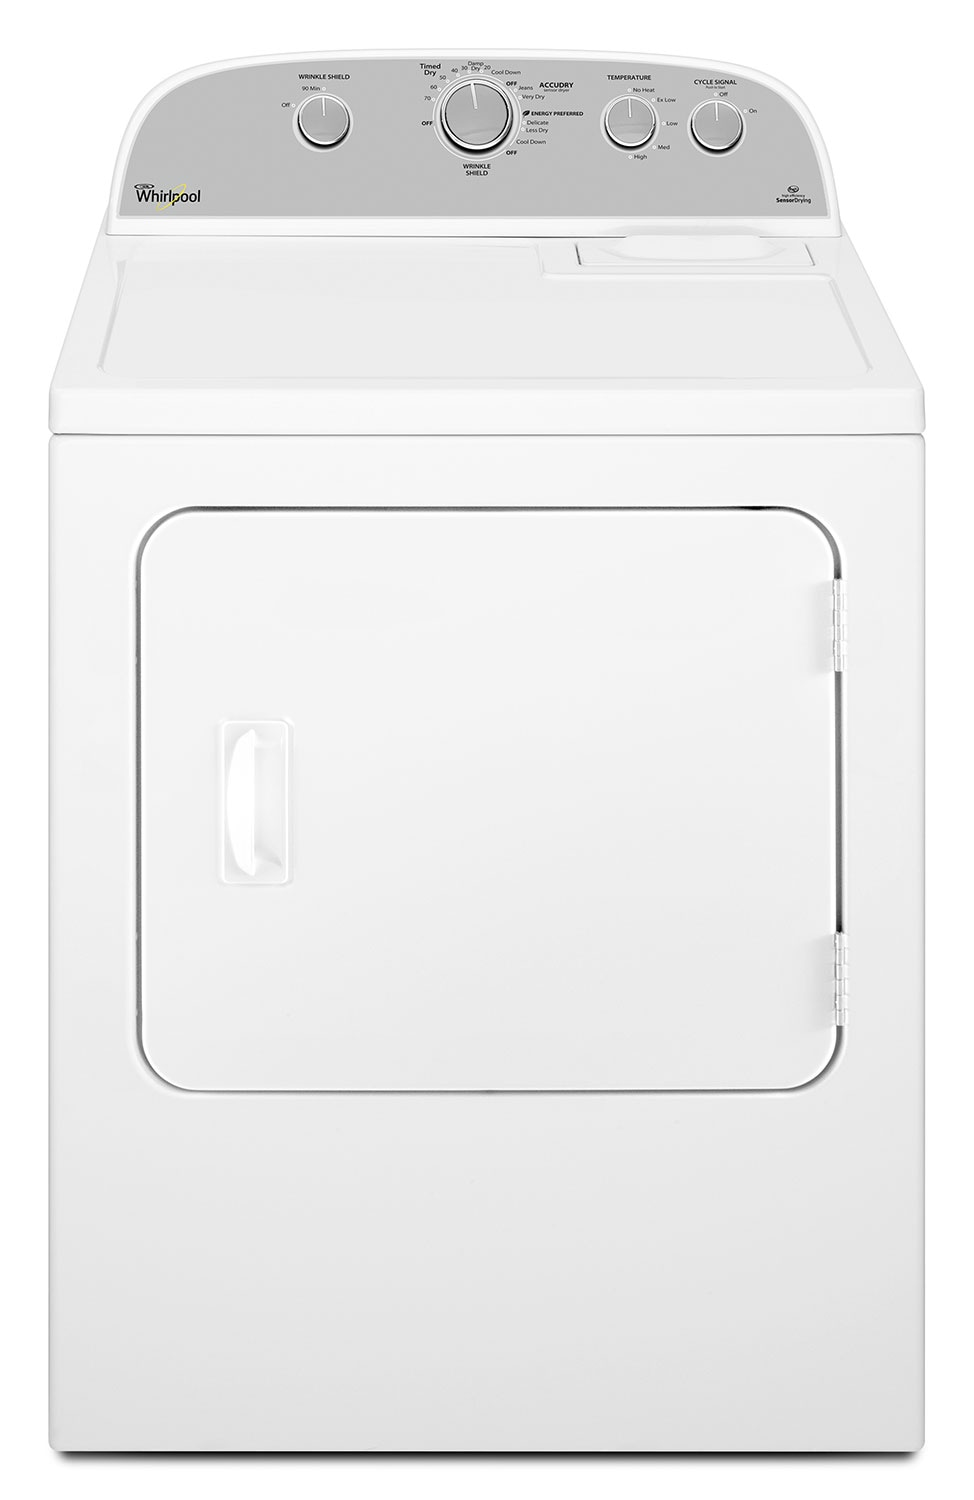 Whirlpool 7.0 Cu. Ft. Top-Load Electric Dryer – YWED4915EW